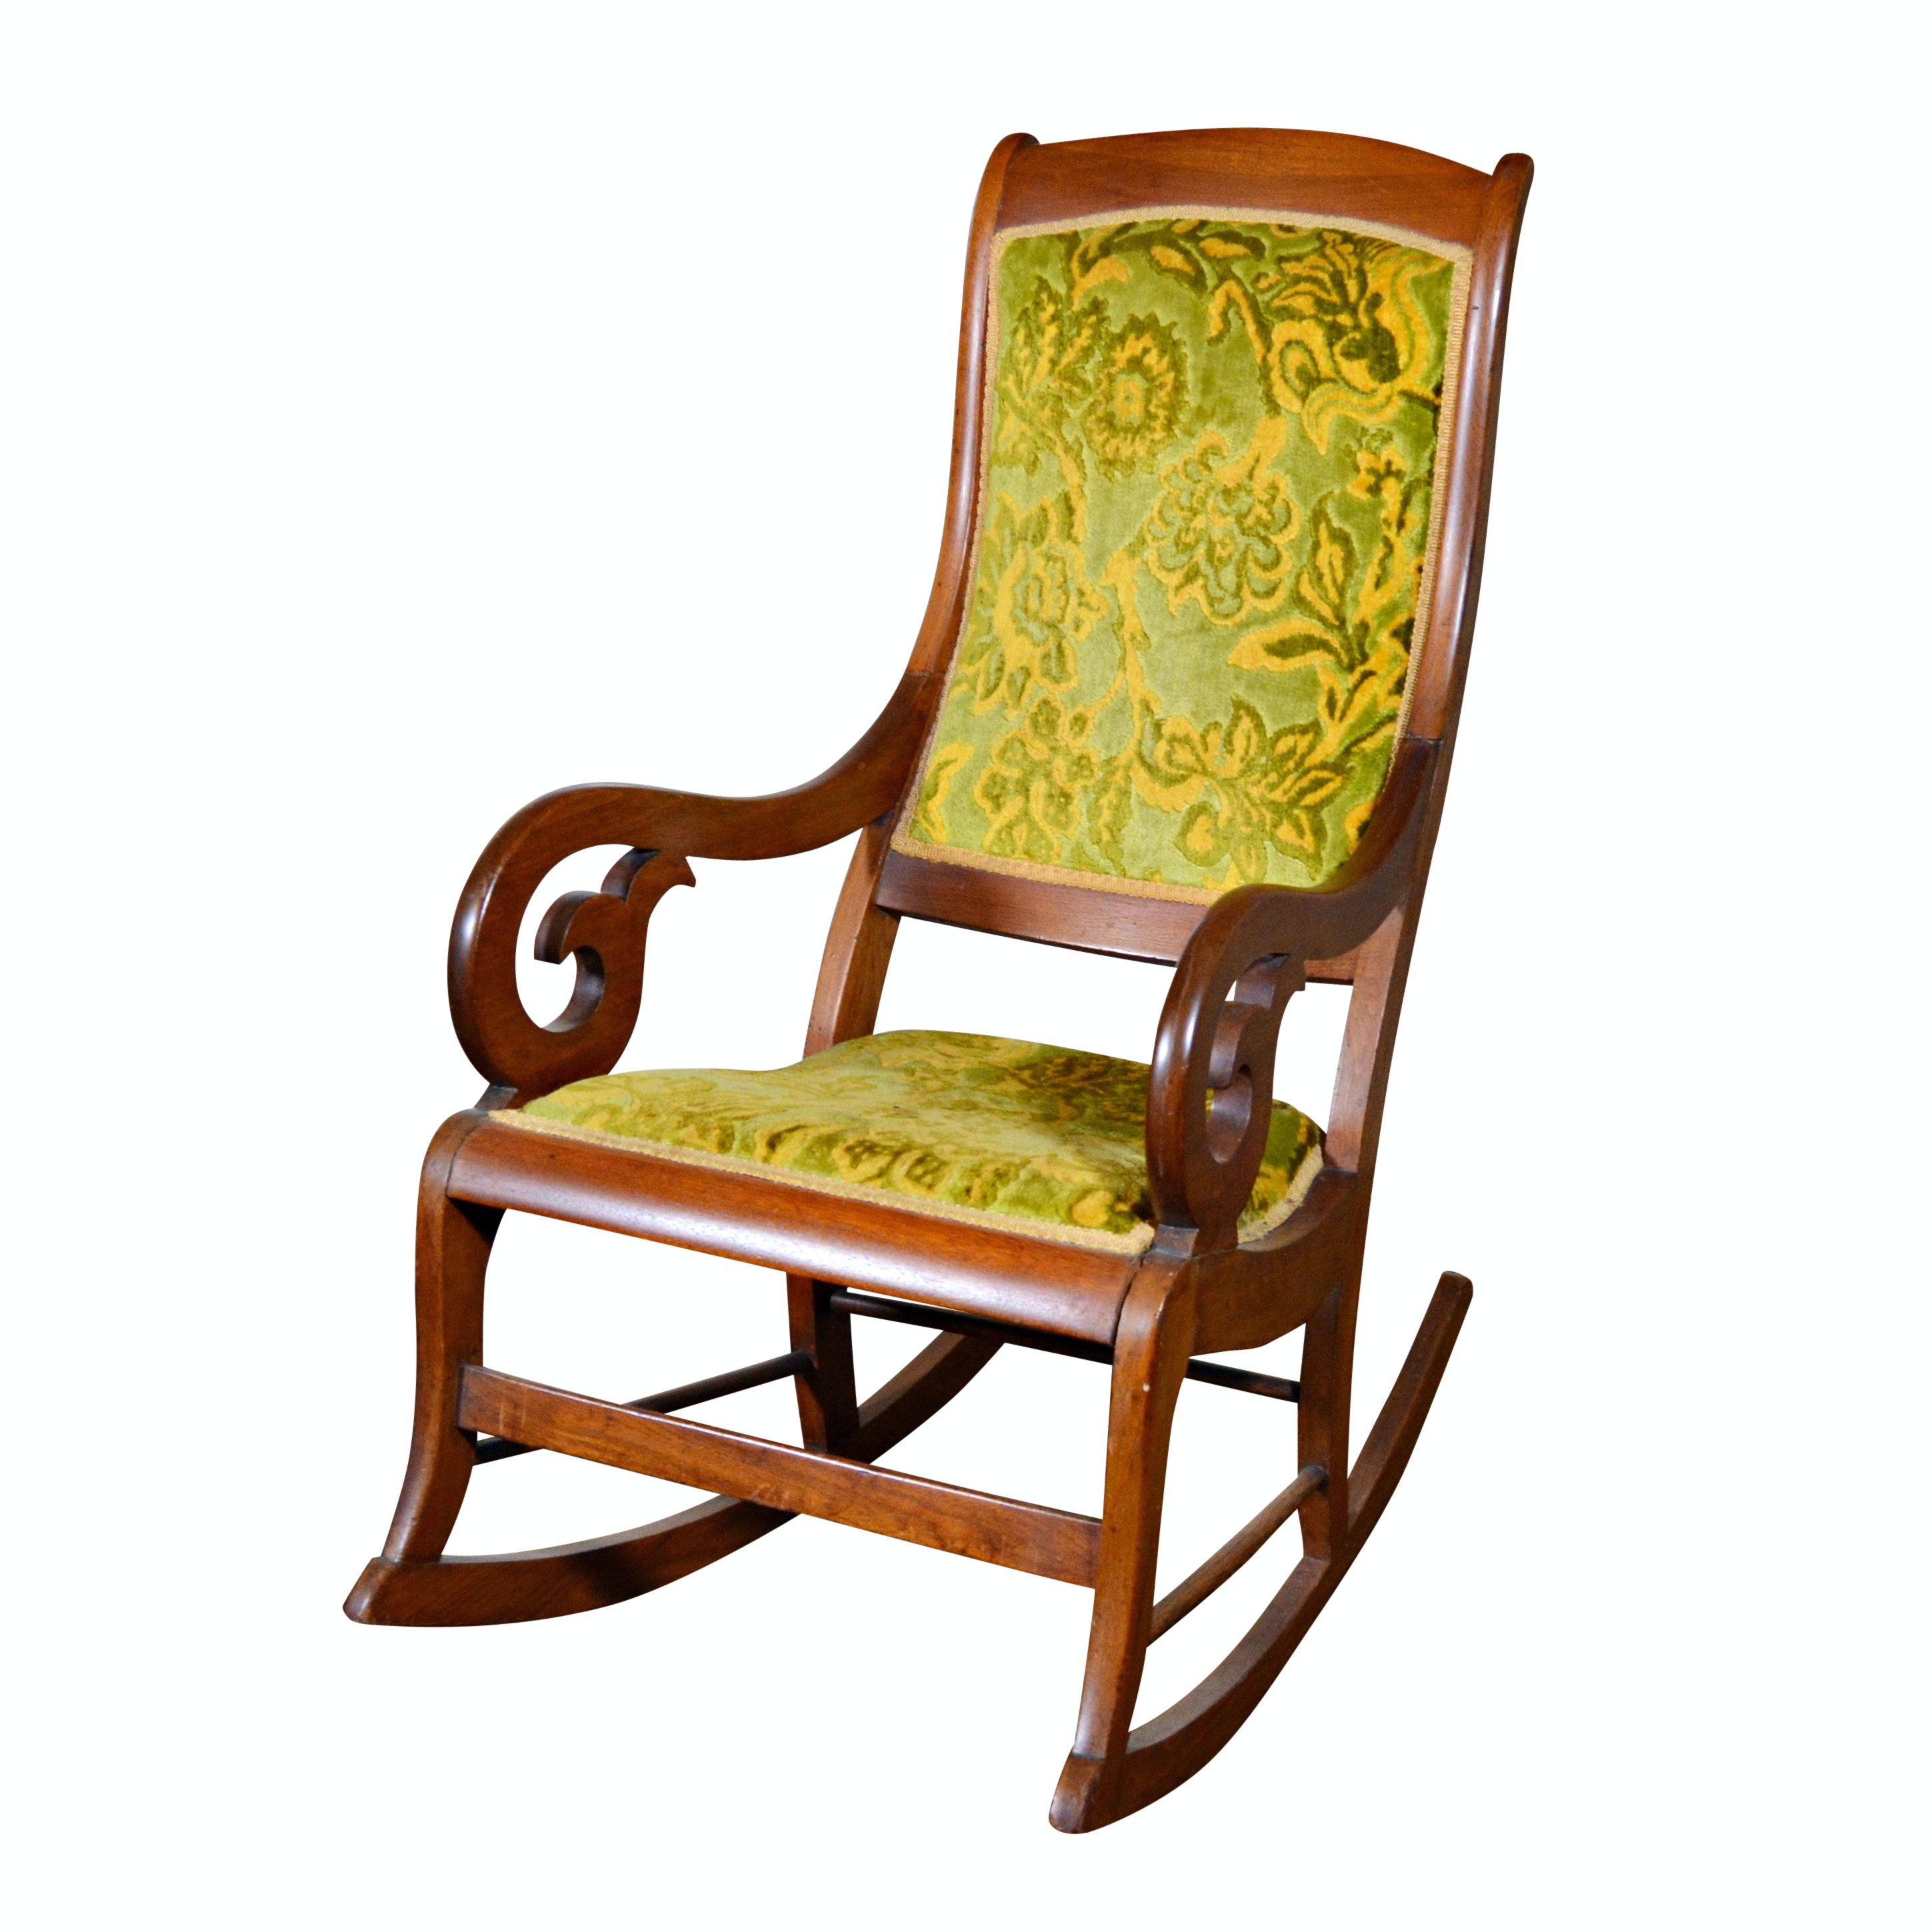 Empire Style Walnut Rocking Chair, Early 20th Century